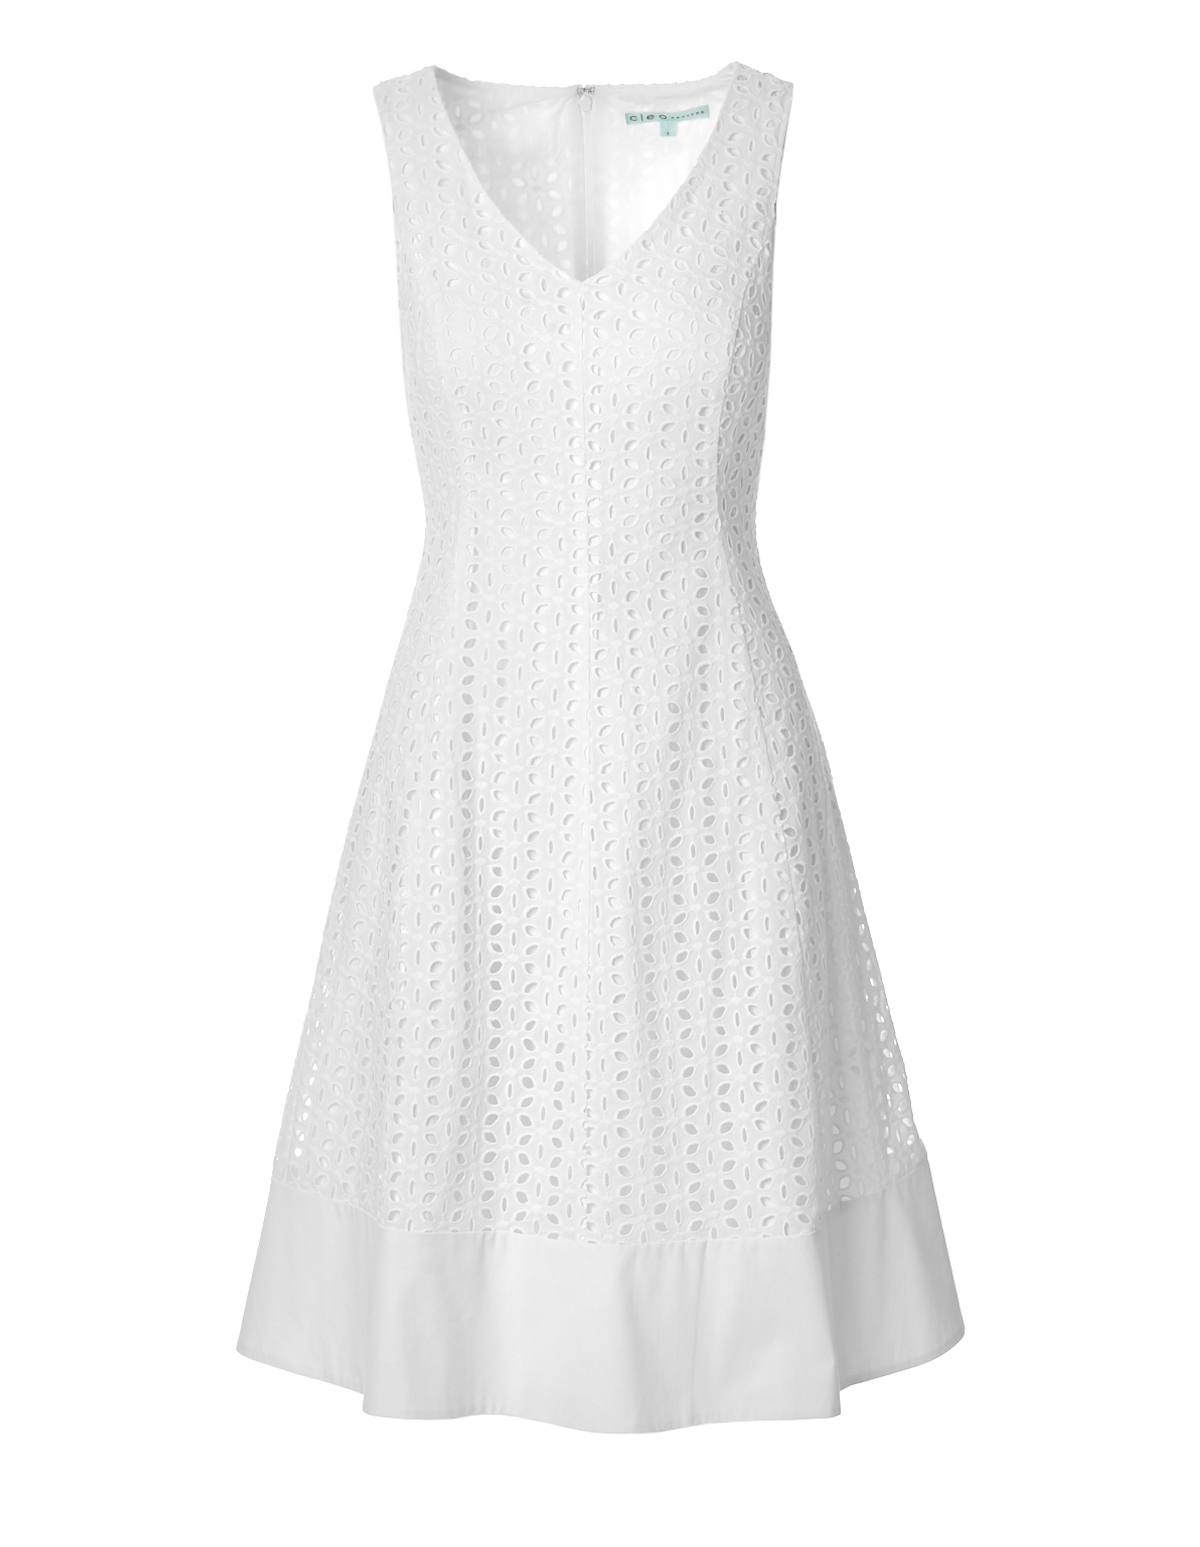 3a0372df6fb White Eyelet Fit and Flare Dress